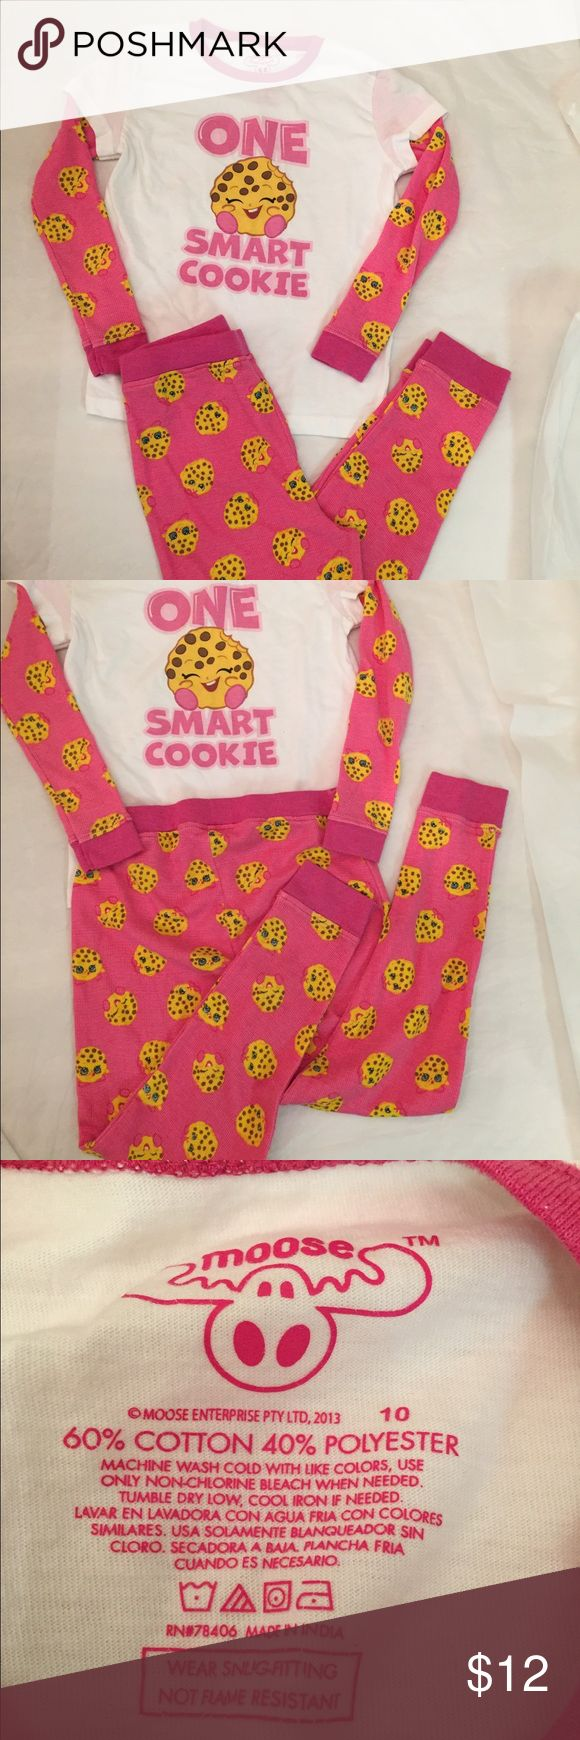 Shopkins Sleepwear Set Girls size 10 but this runs small. Posting as an 8. Long sleeve Shopkins graphic top and long pants bottoms. Lightweight long sleepwear set. Excellent used condition. Thanks! Shopkins Pajamas Pajama Sets